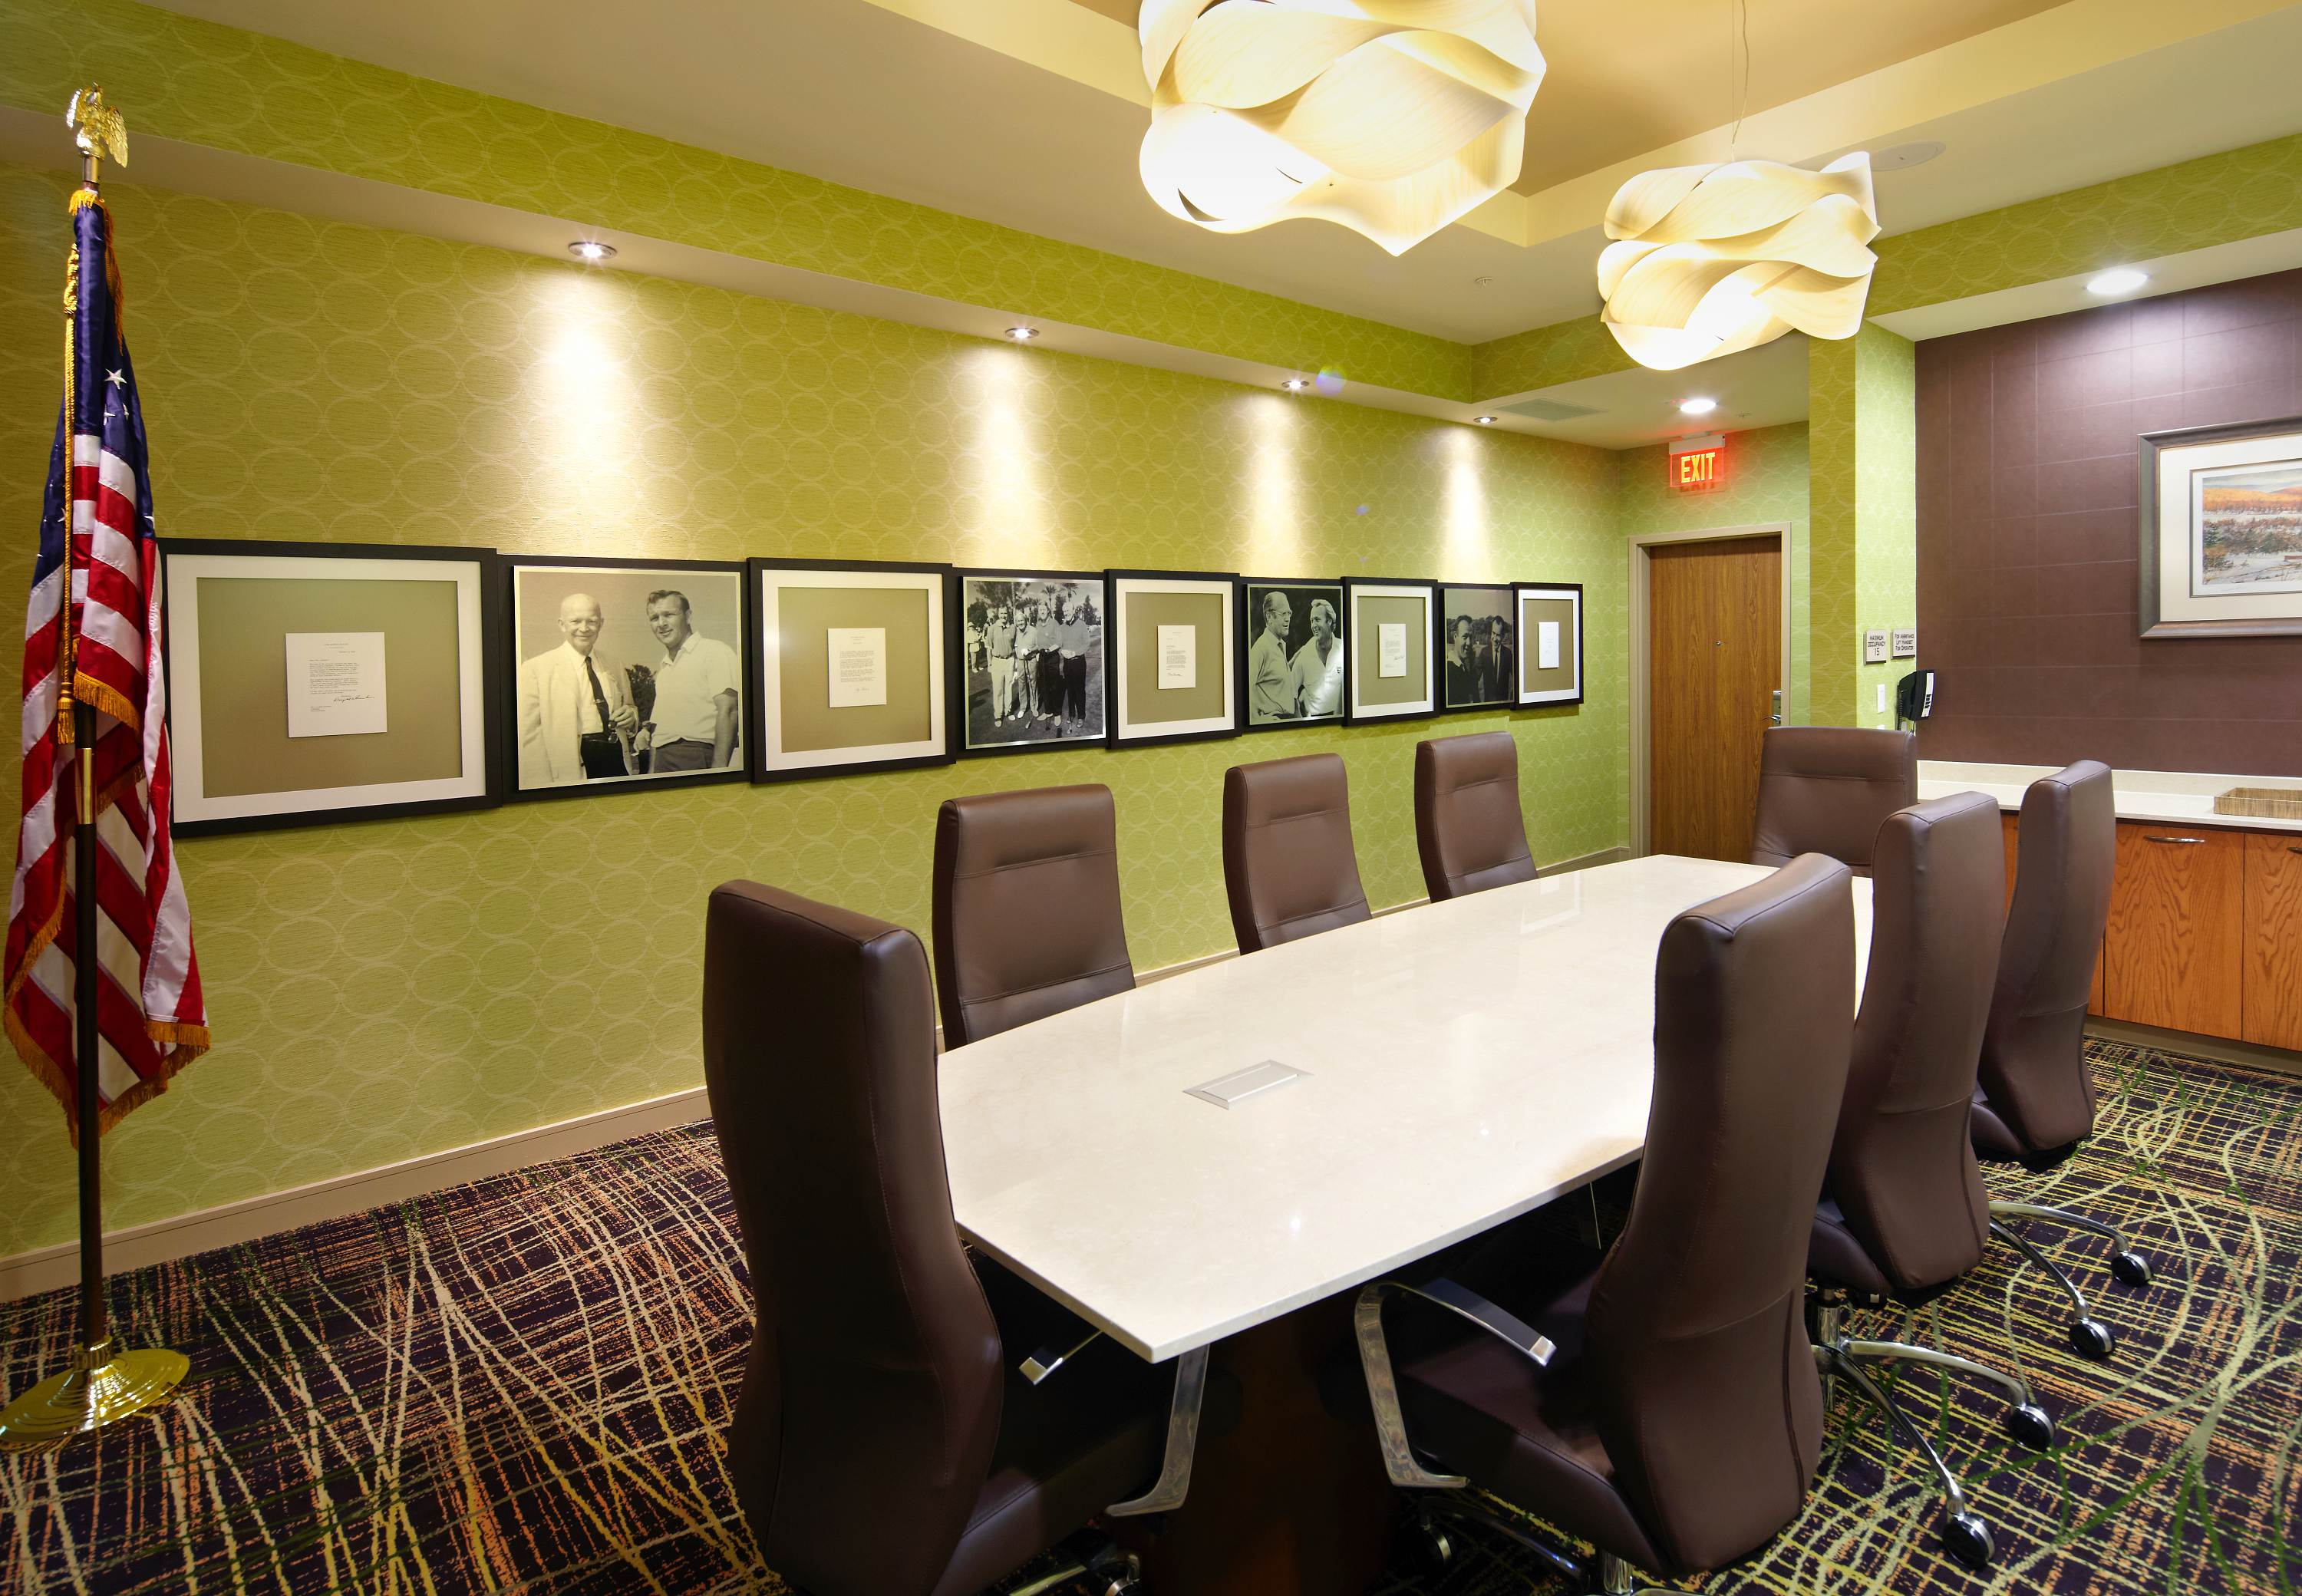 SpringHill Suites by Marriott Pittsburgh Latrobe image 14